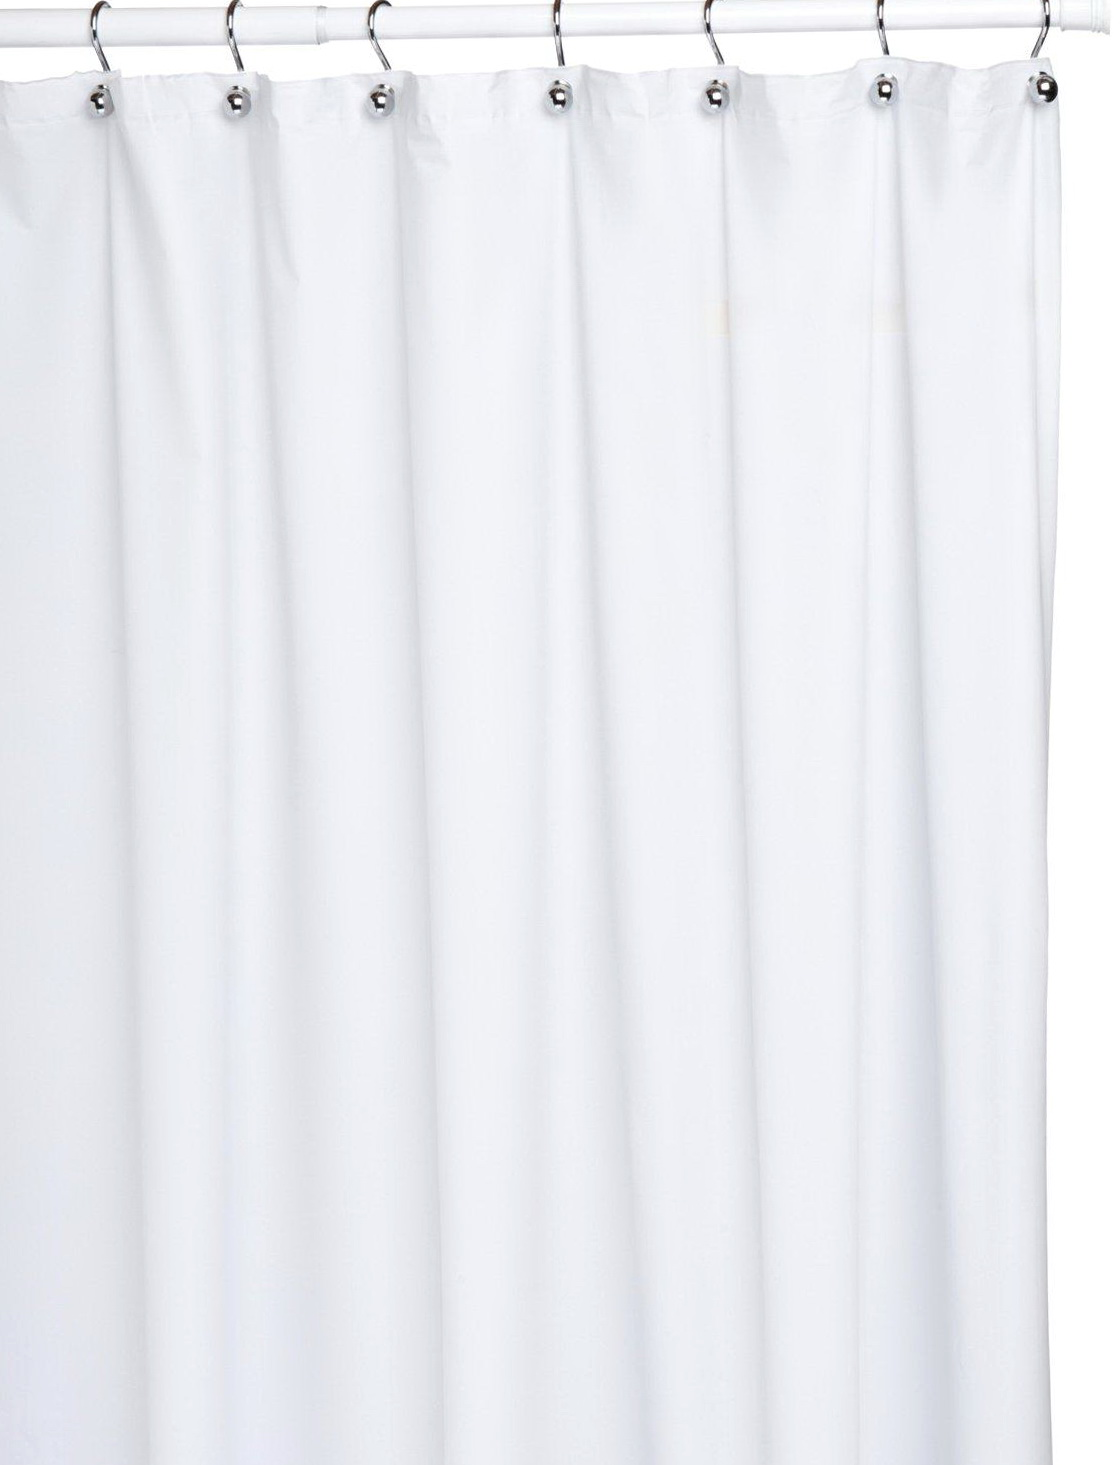 Extra Long Curtain Rods 160 Home Design Ideas